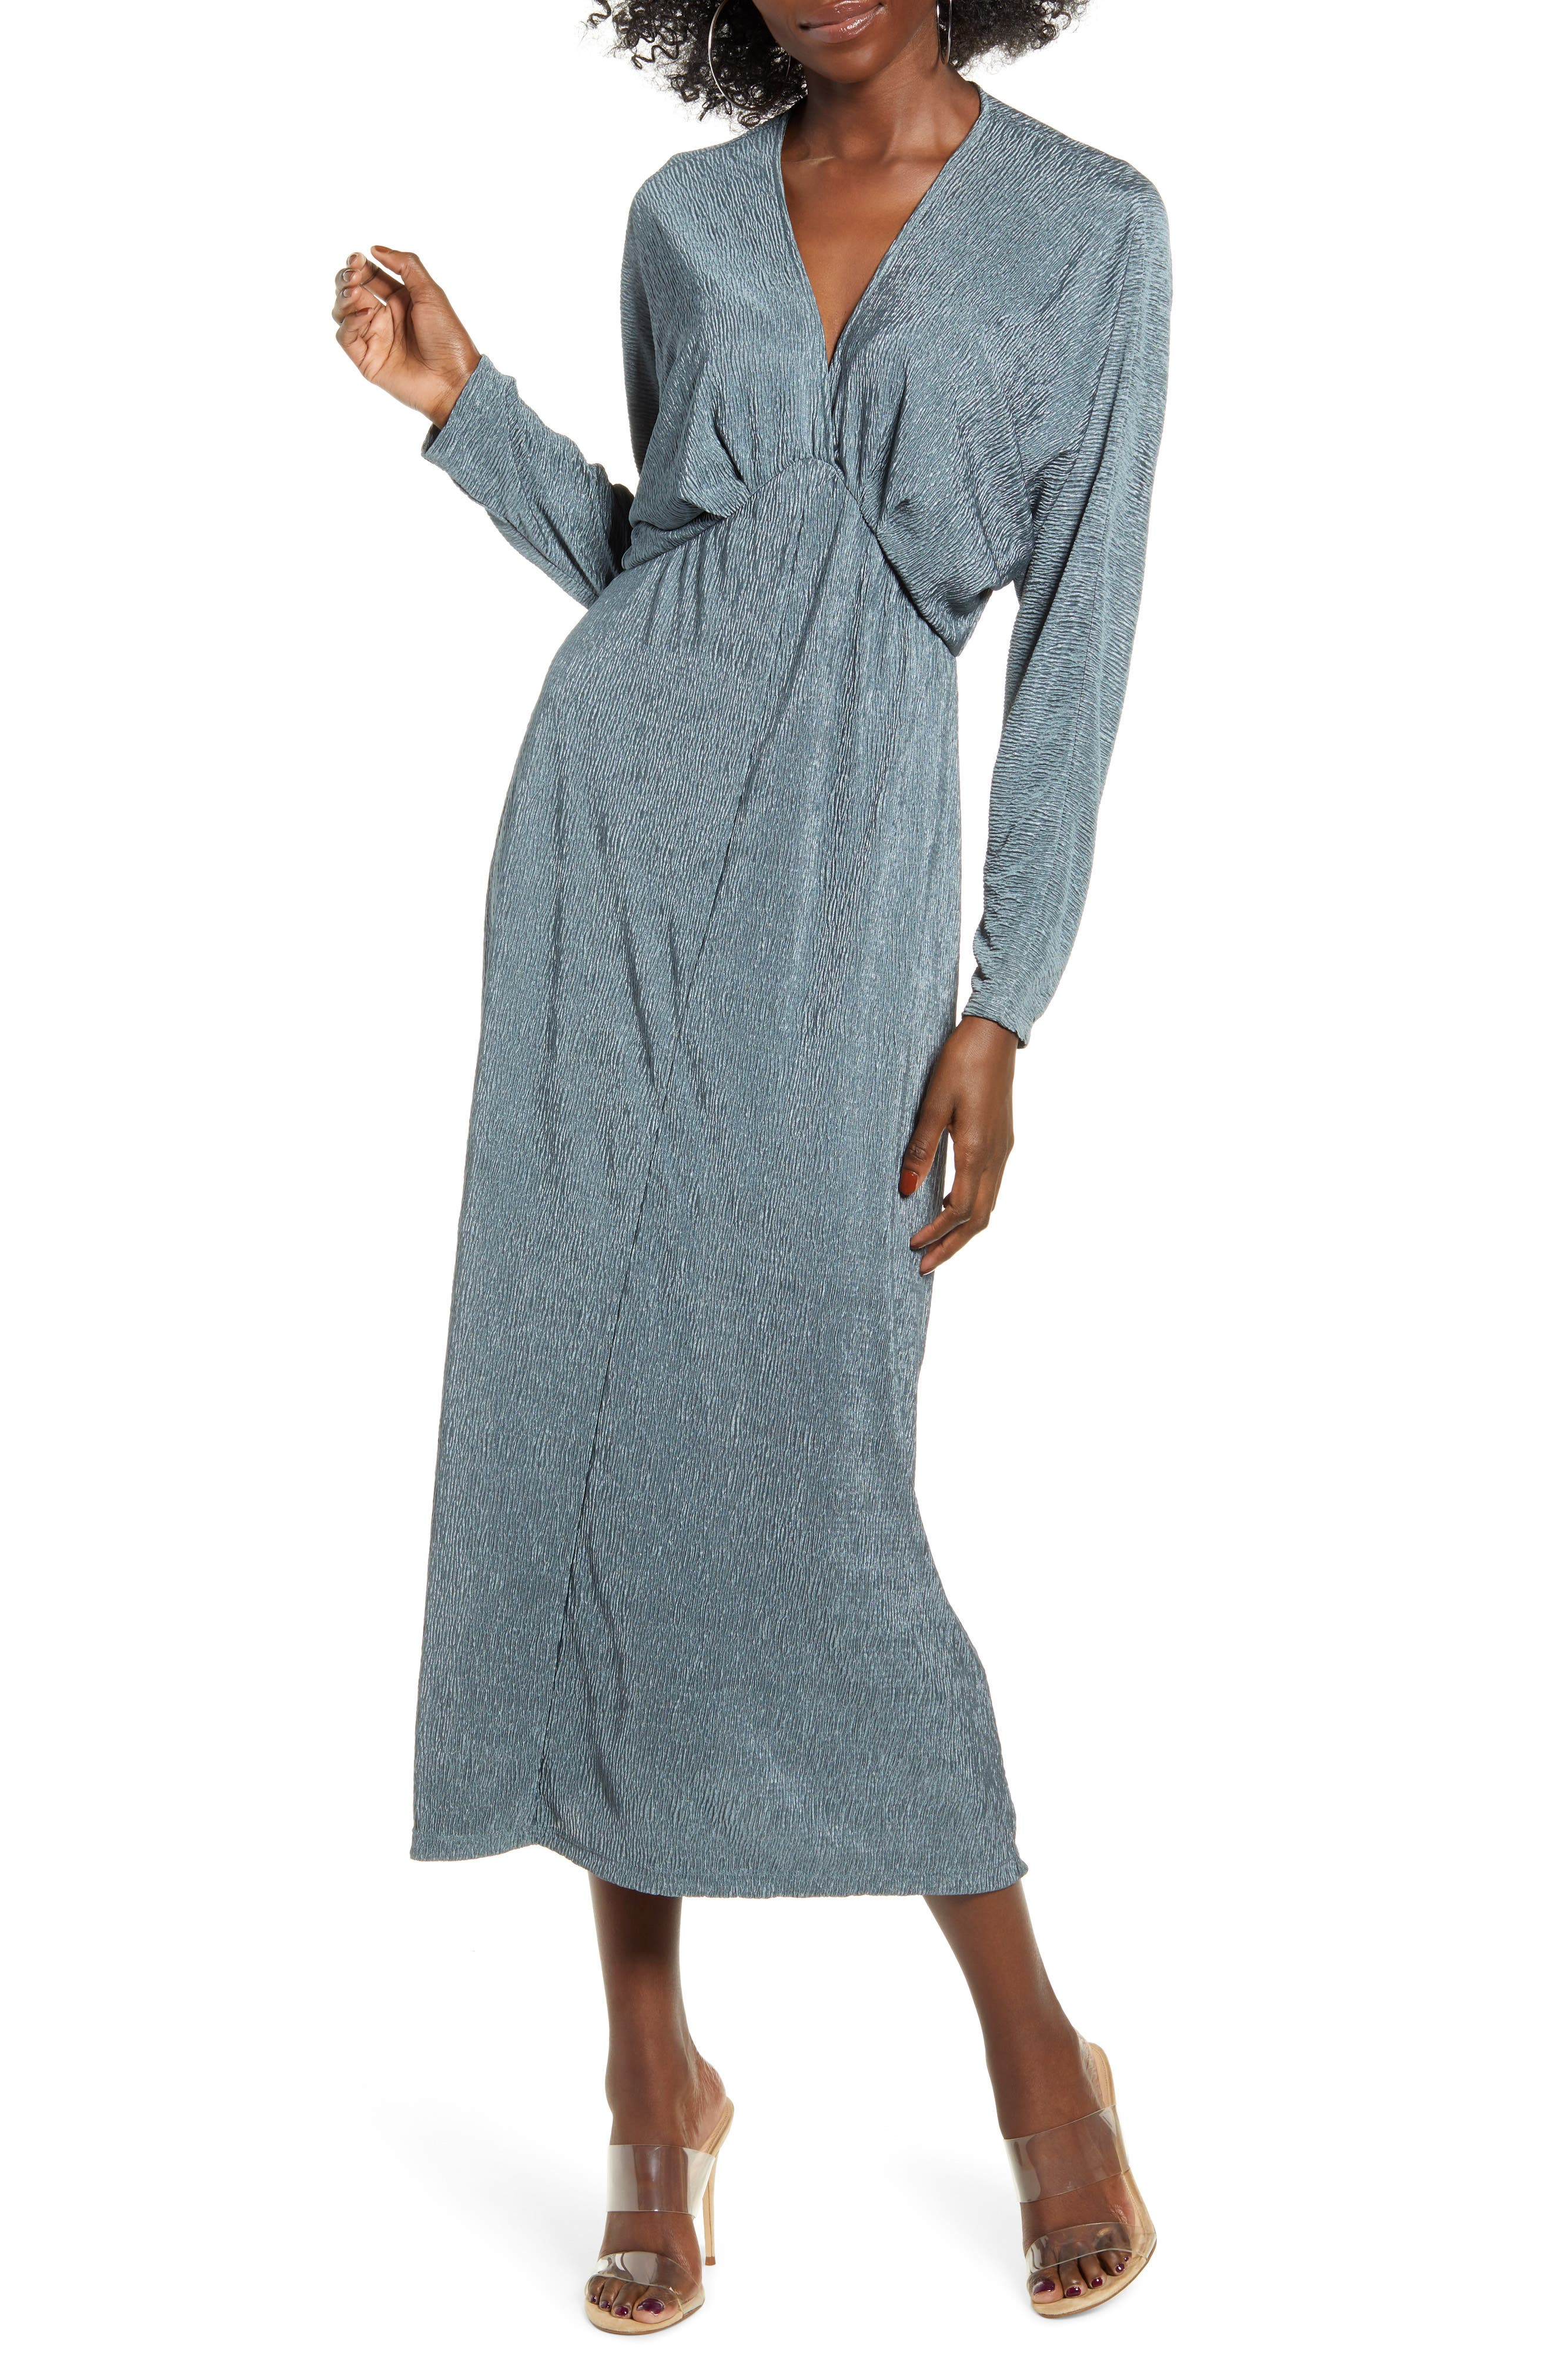 All in Favor Textured Long Sleeve Dress